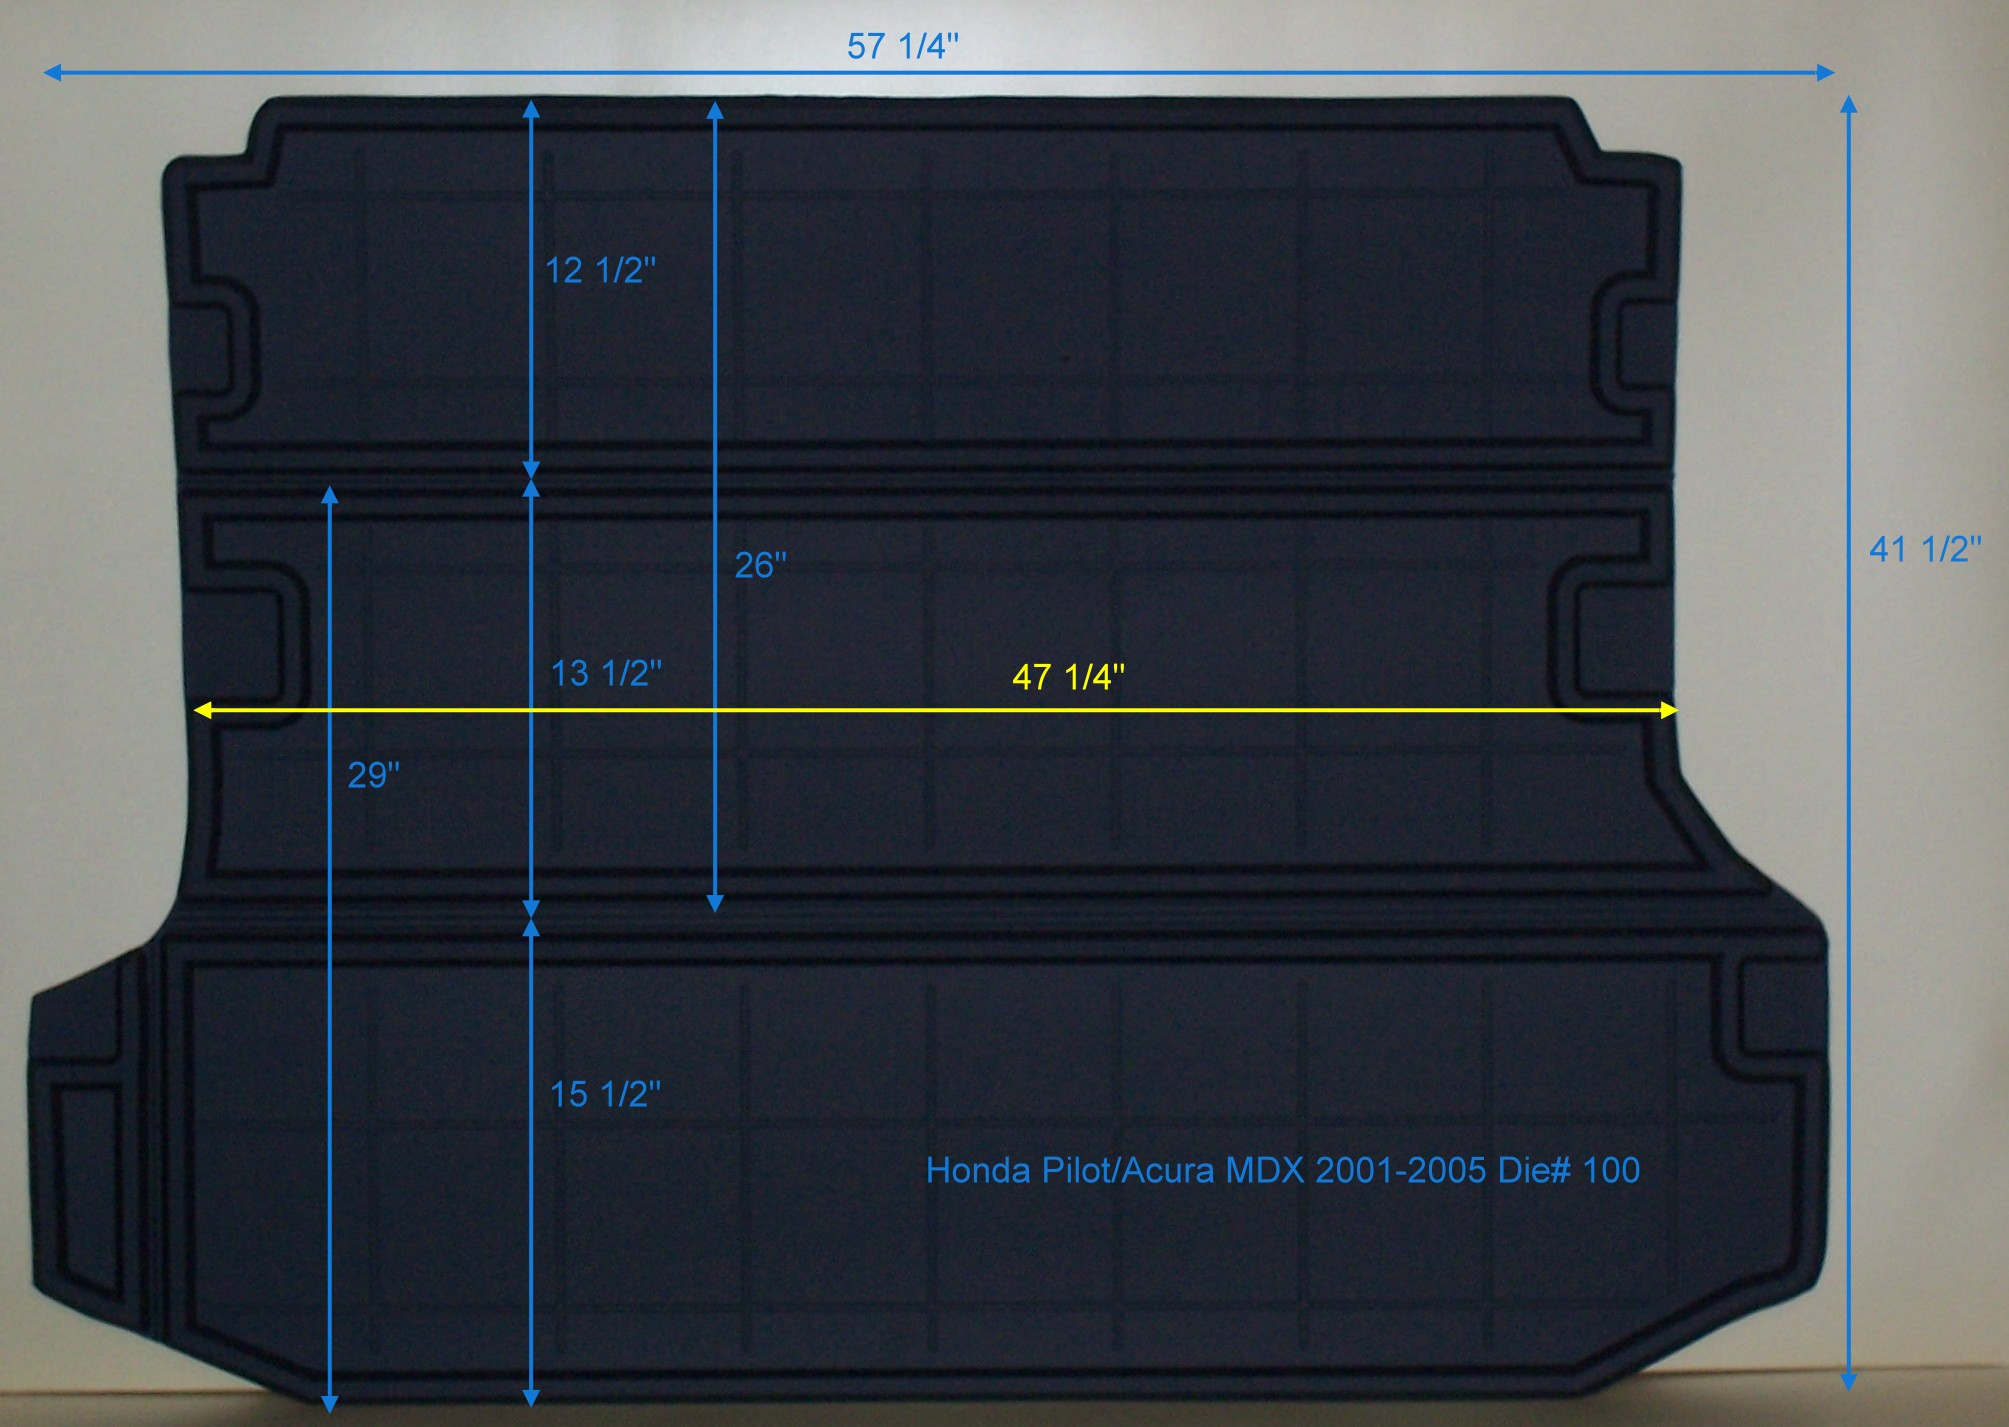 Cargo liner that enables use of 3rd row - Acura MDX Forum : Acura MDX SUV Forums